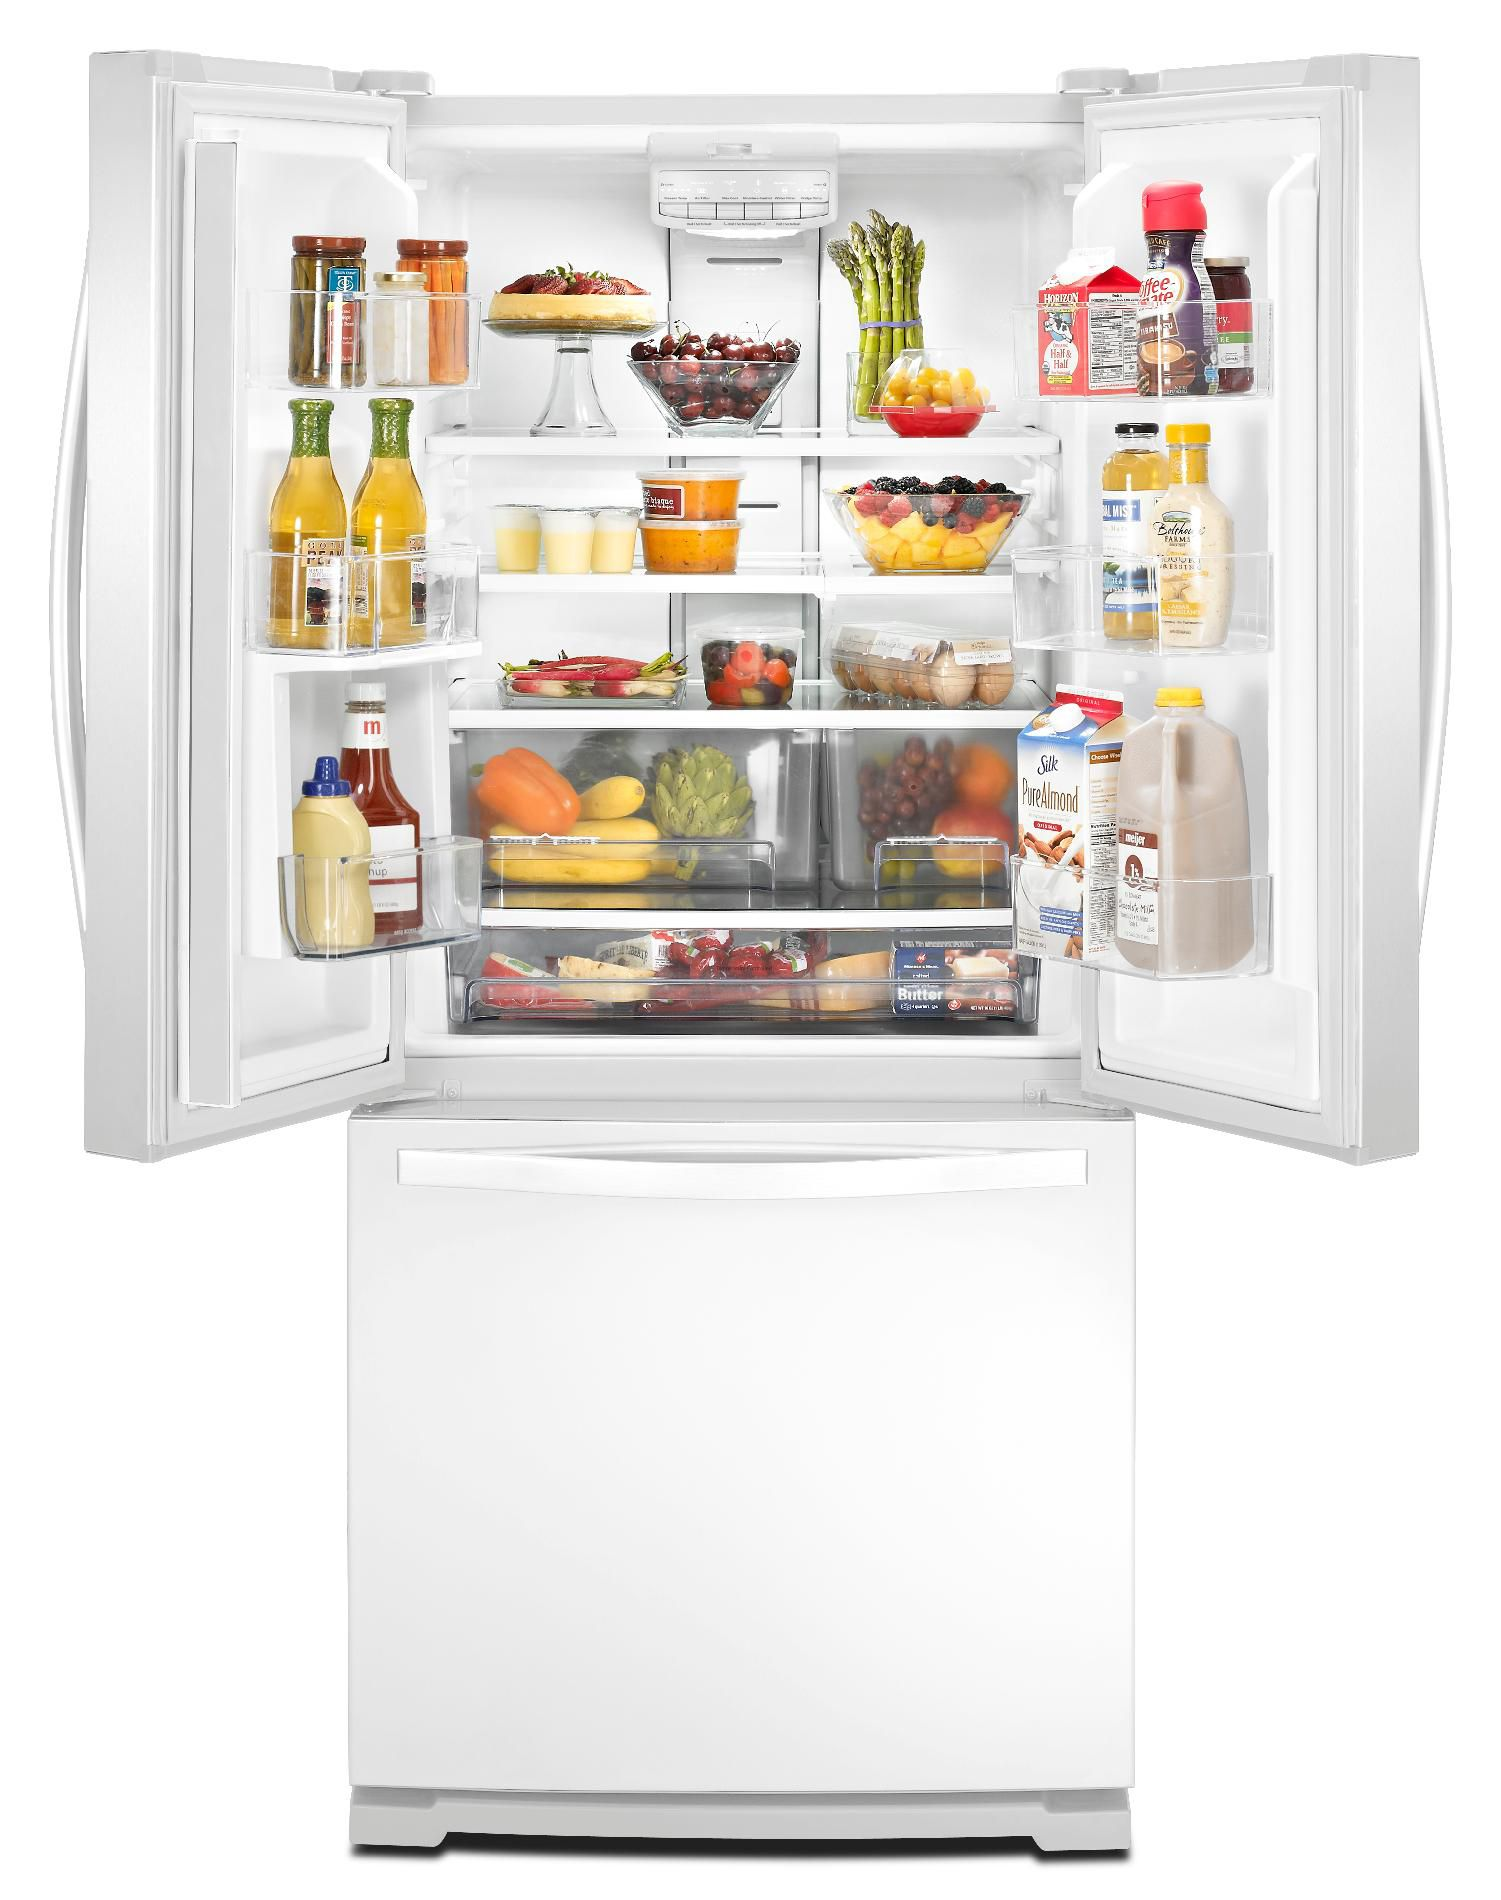 Whirlpool 20 cu. ft. French Door Refrigerator w/ 30 in. Wide Footprint - White